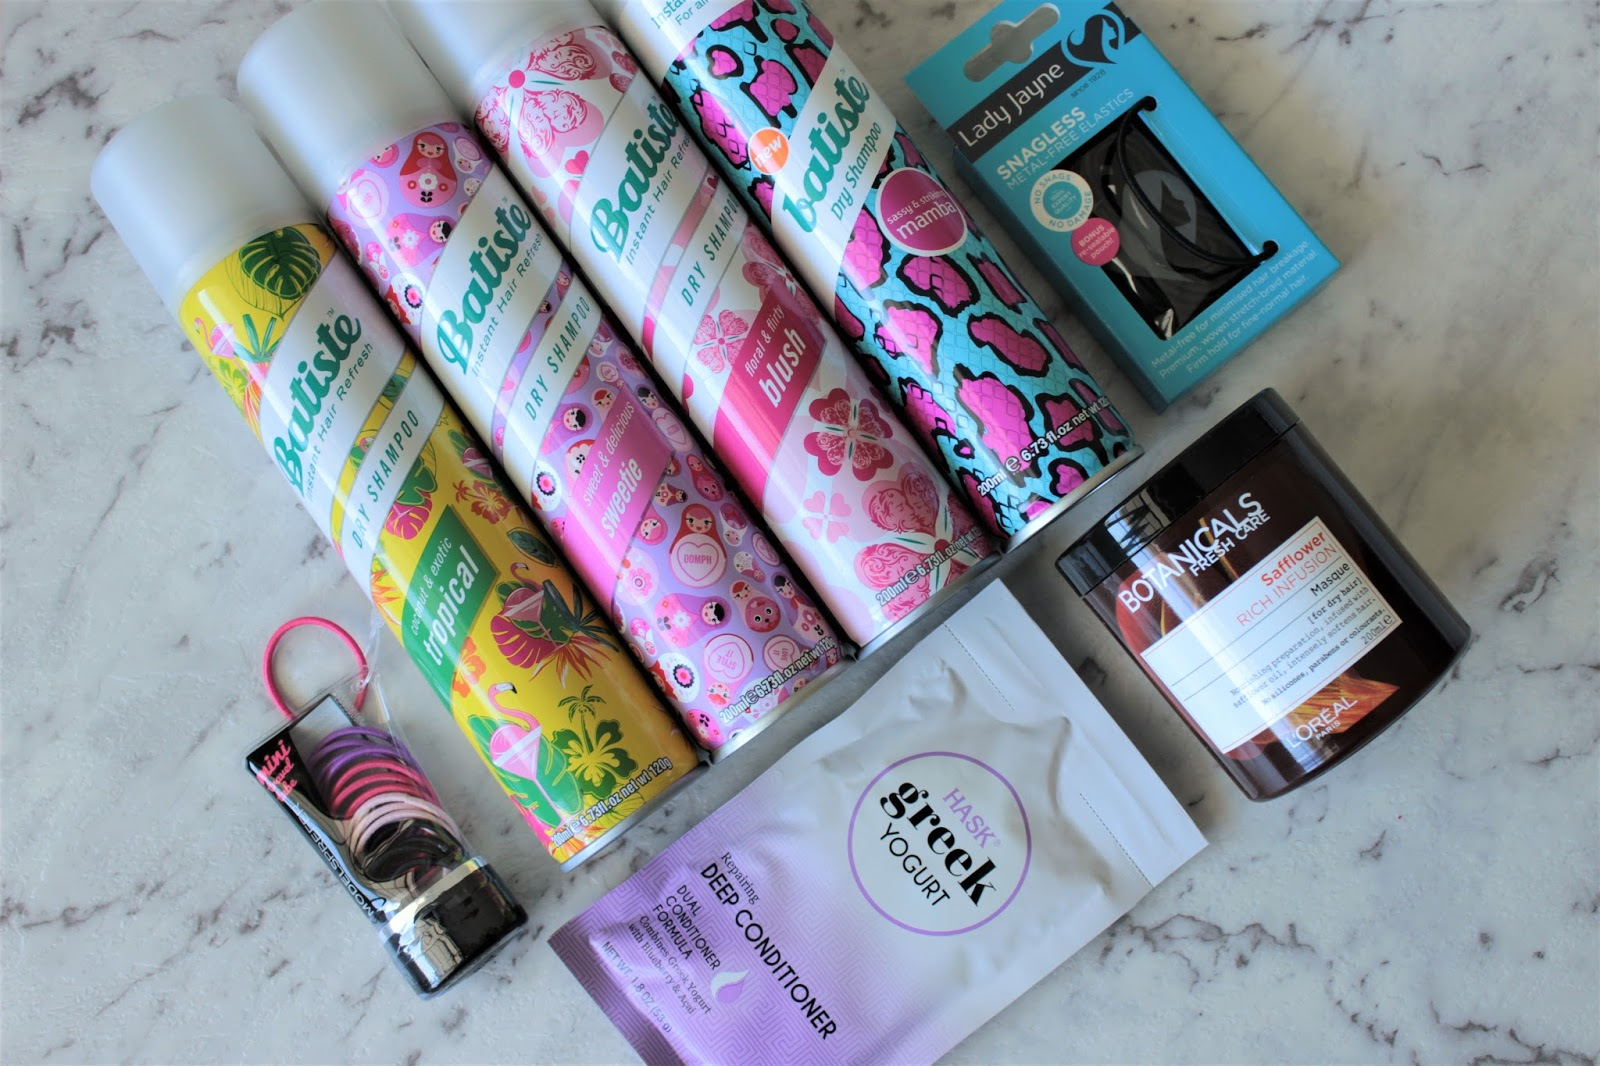 937e59ab124 Imminent Beauty: Priceline 50% off Haircare Haul